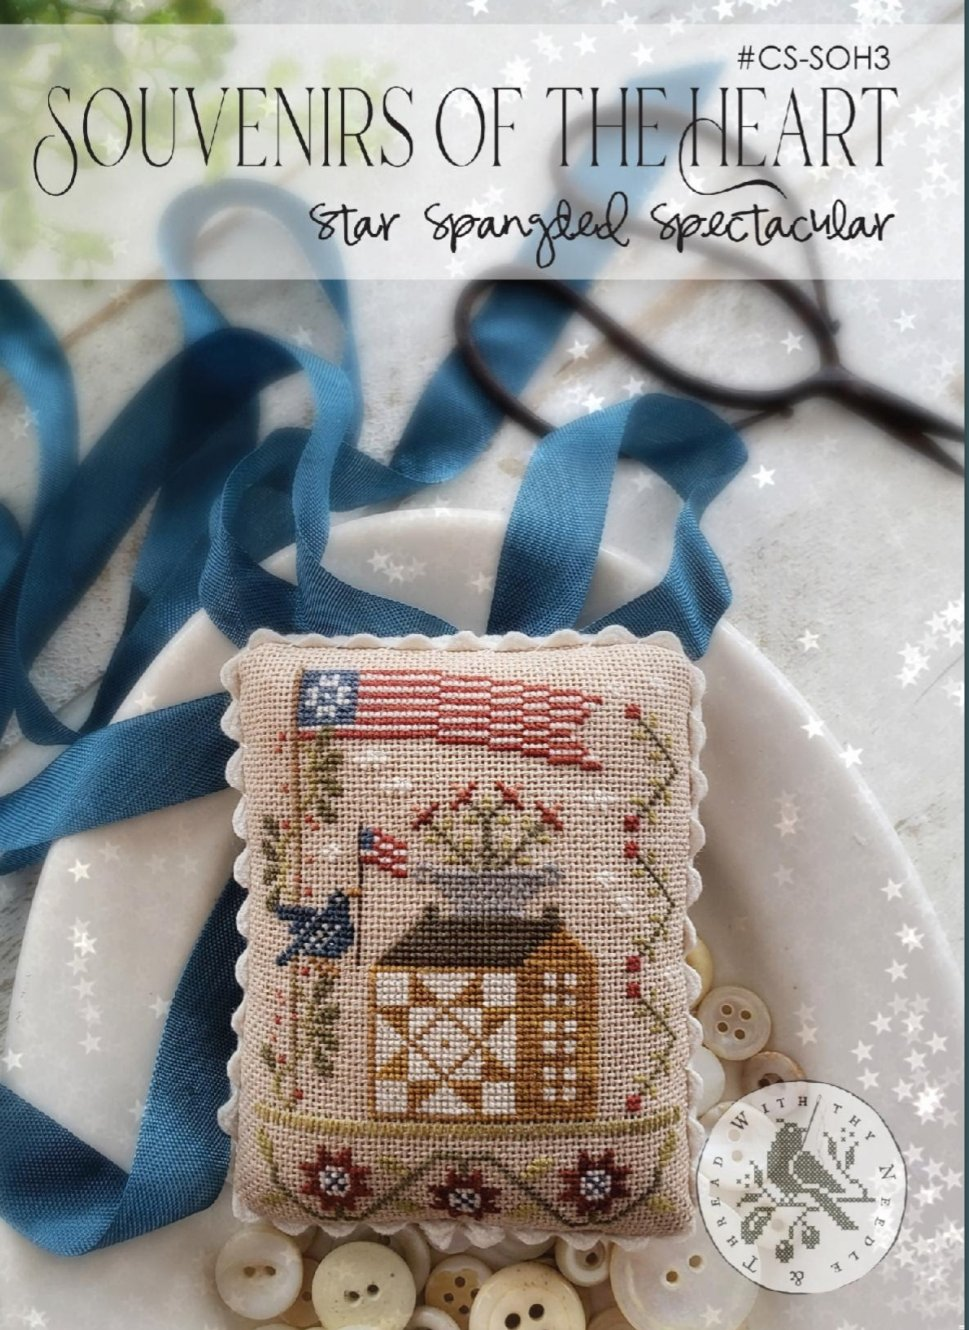 With Thy Needle and Thread - Star Spangled Spectacular - Souvenirs of the Heart